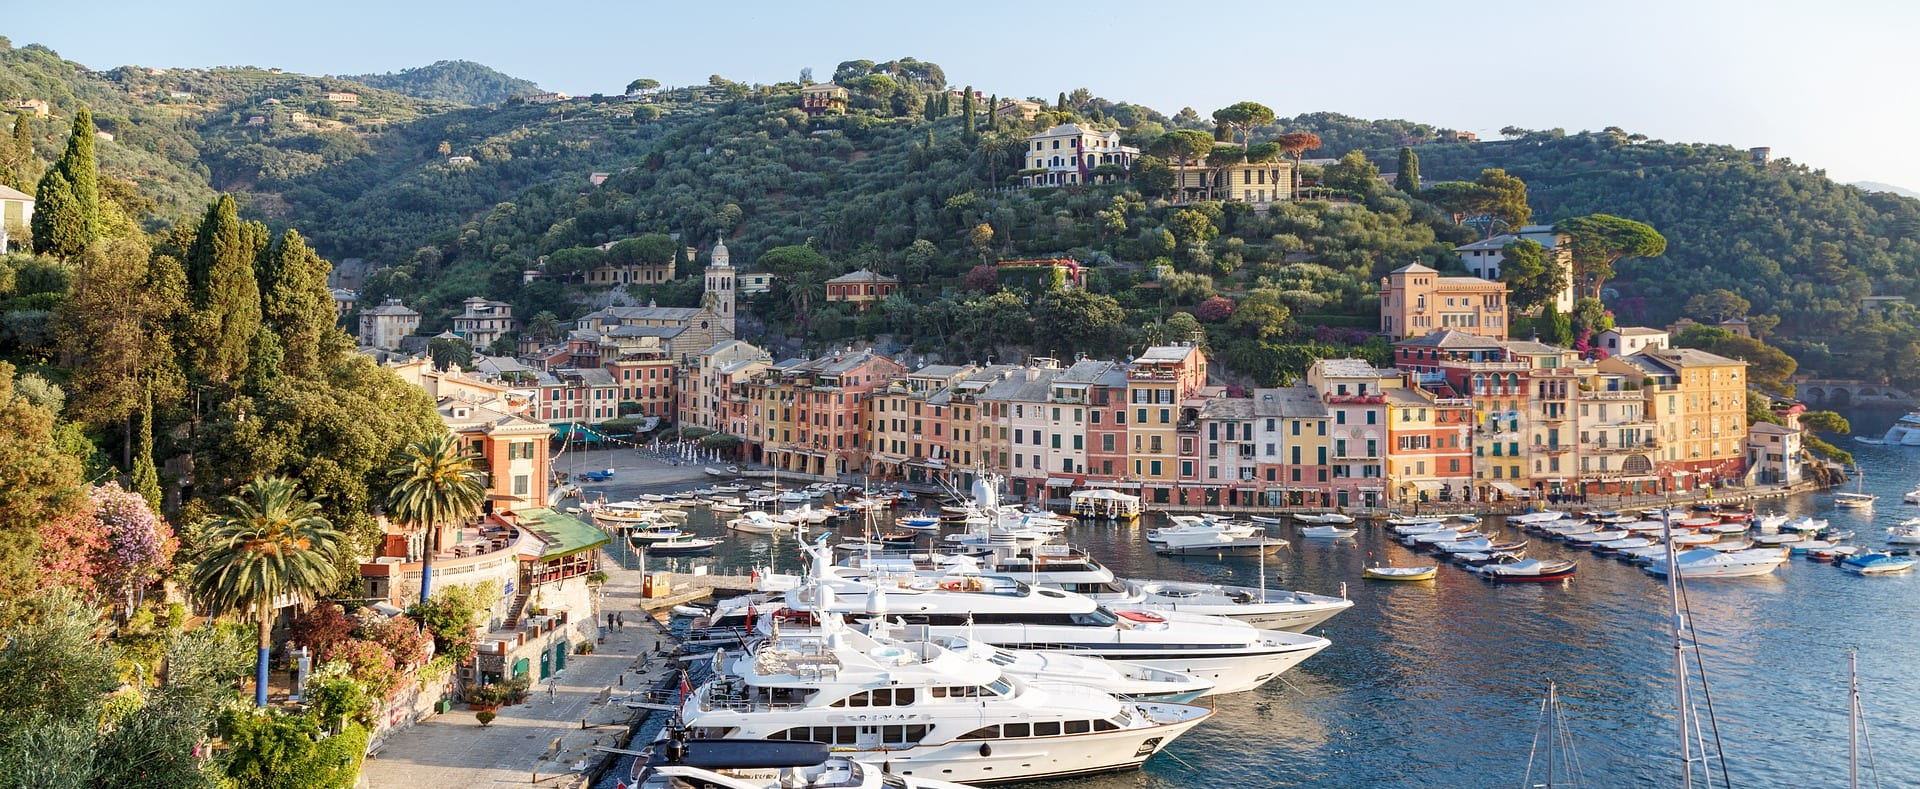 Aerial view of yachts and apartment buildings at Portofino fishing village and holiday resort, Italy.